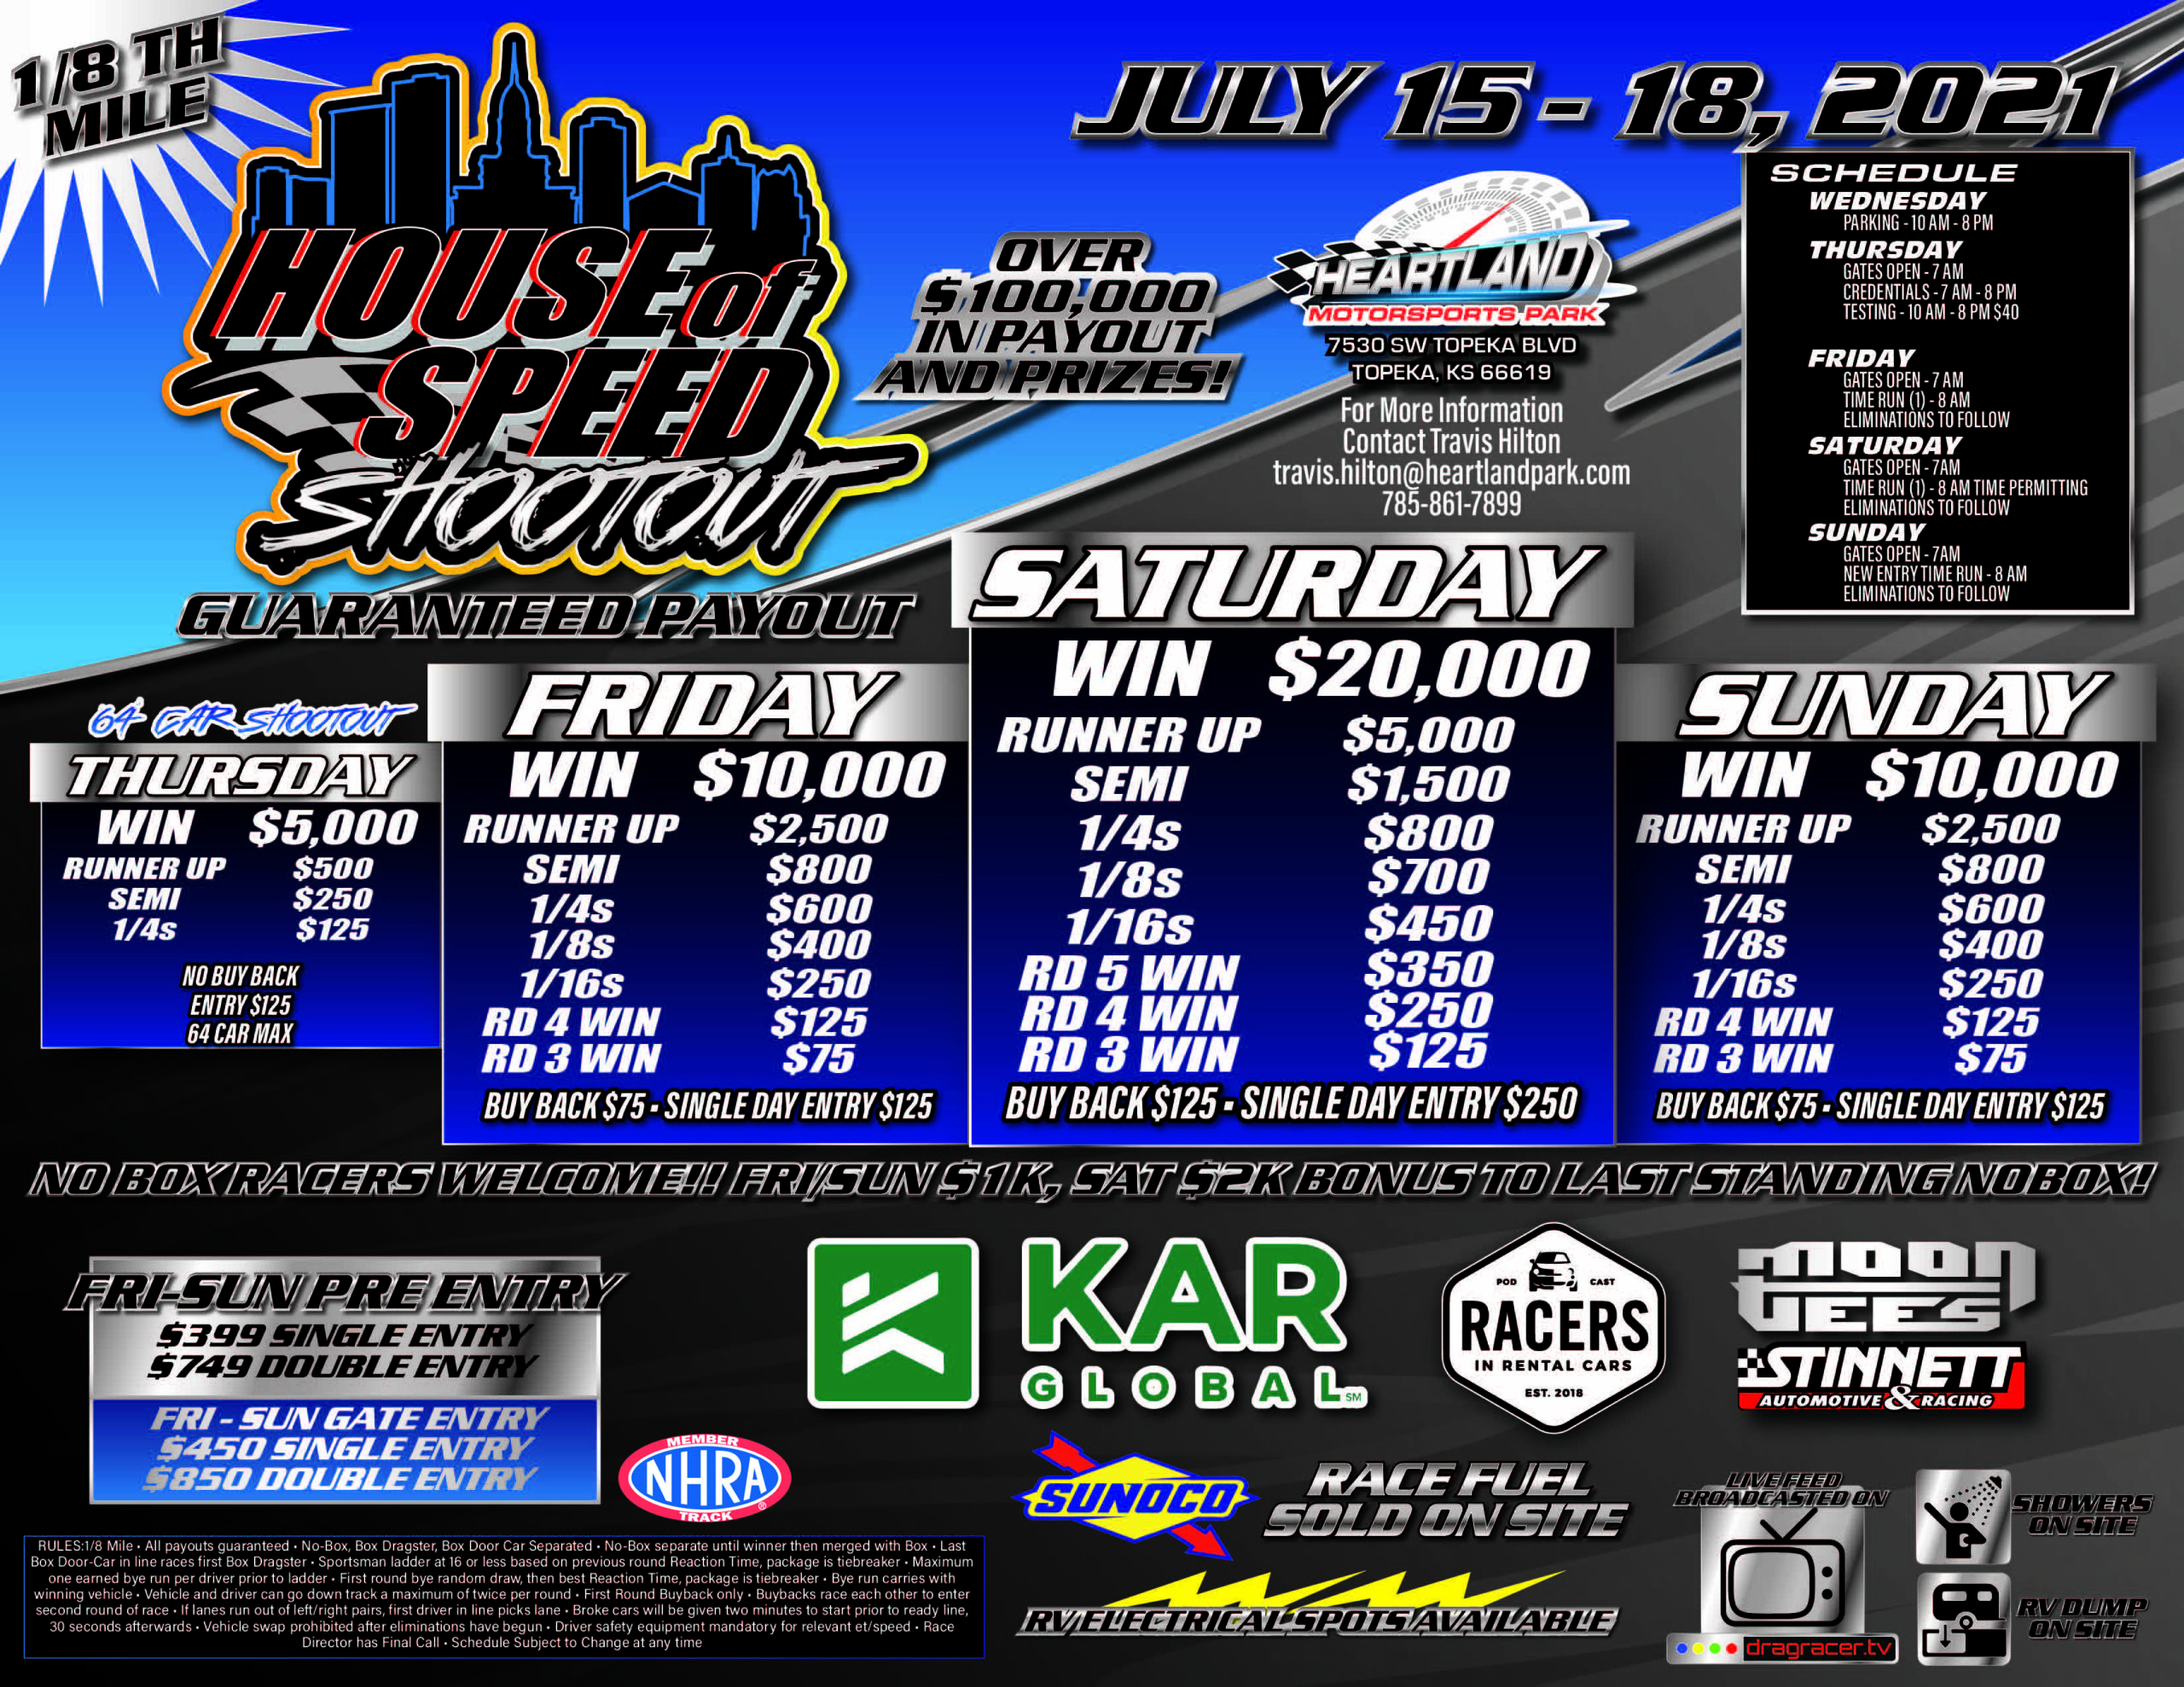 FREE LIVE STREAMING VIDEO: Big Money Bracket Racing At Heartland Motorsports Park's House Of Speed Shootout